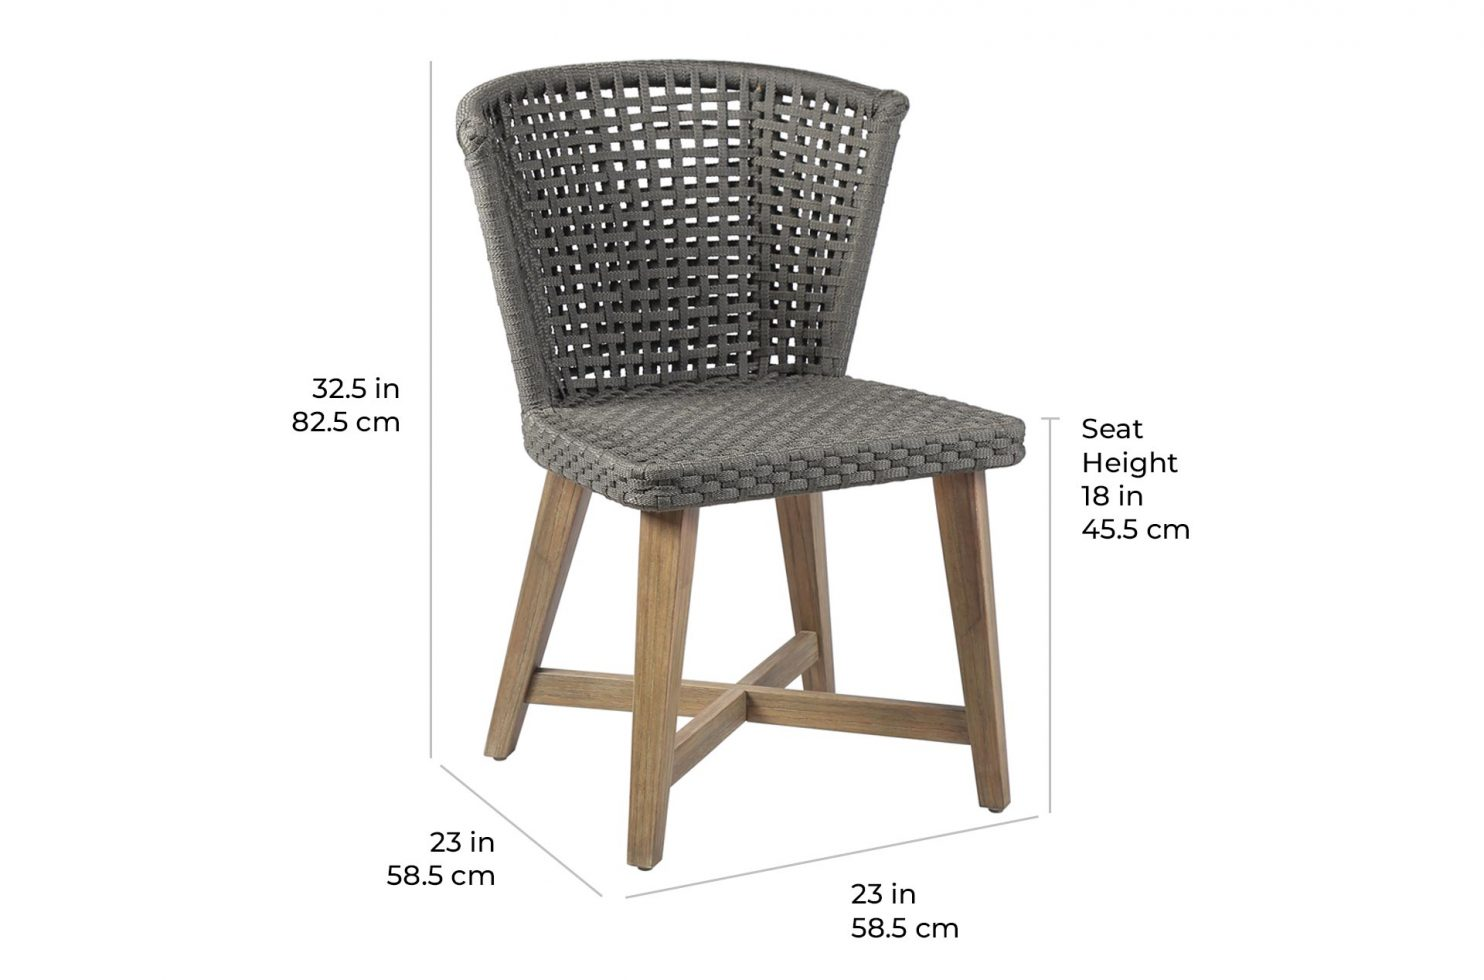 pioneer bistro chair 504FT402P2 E scale dims